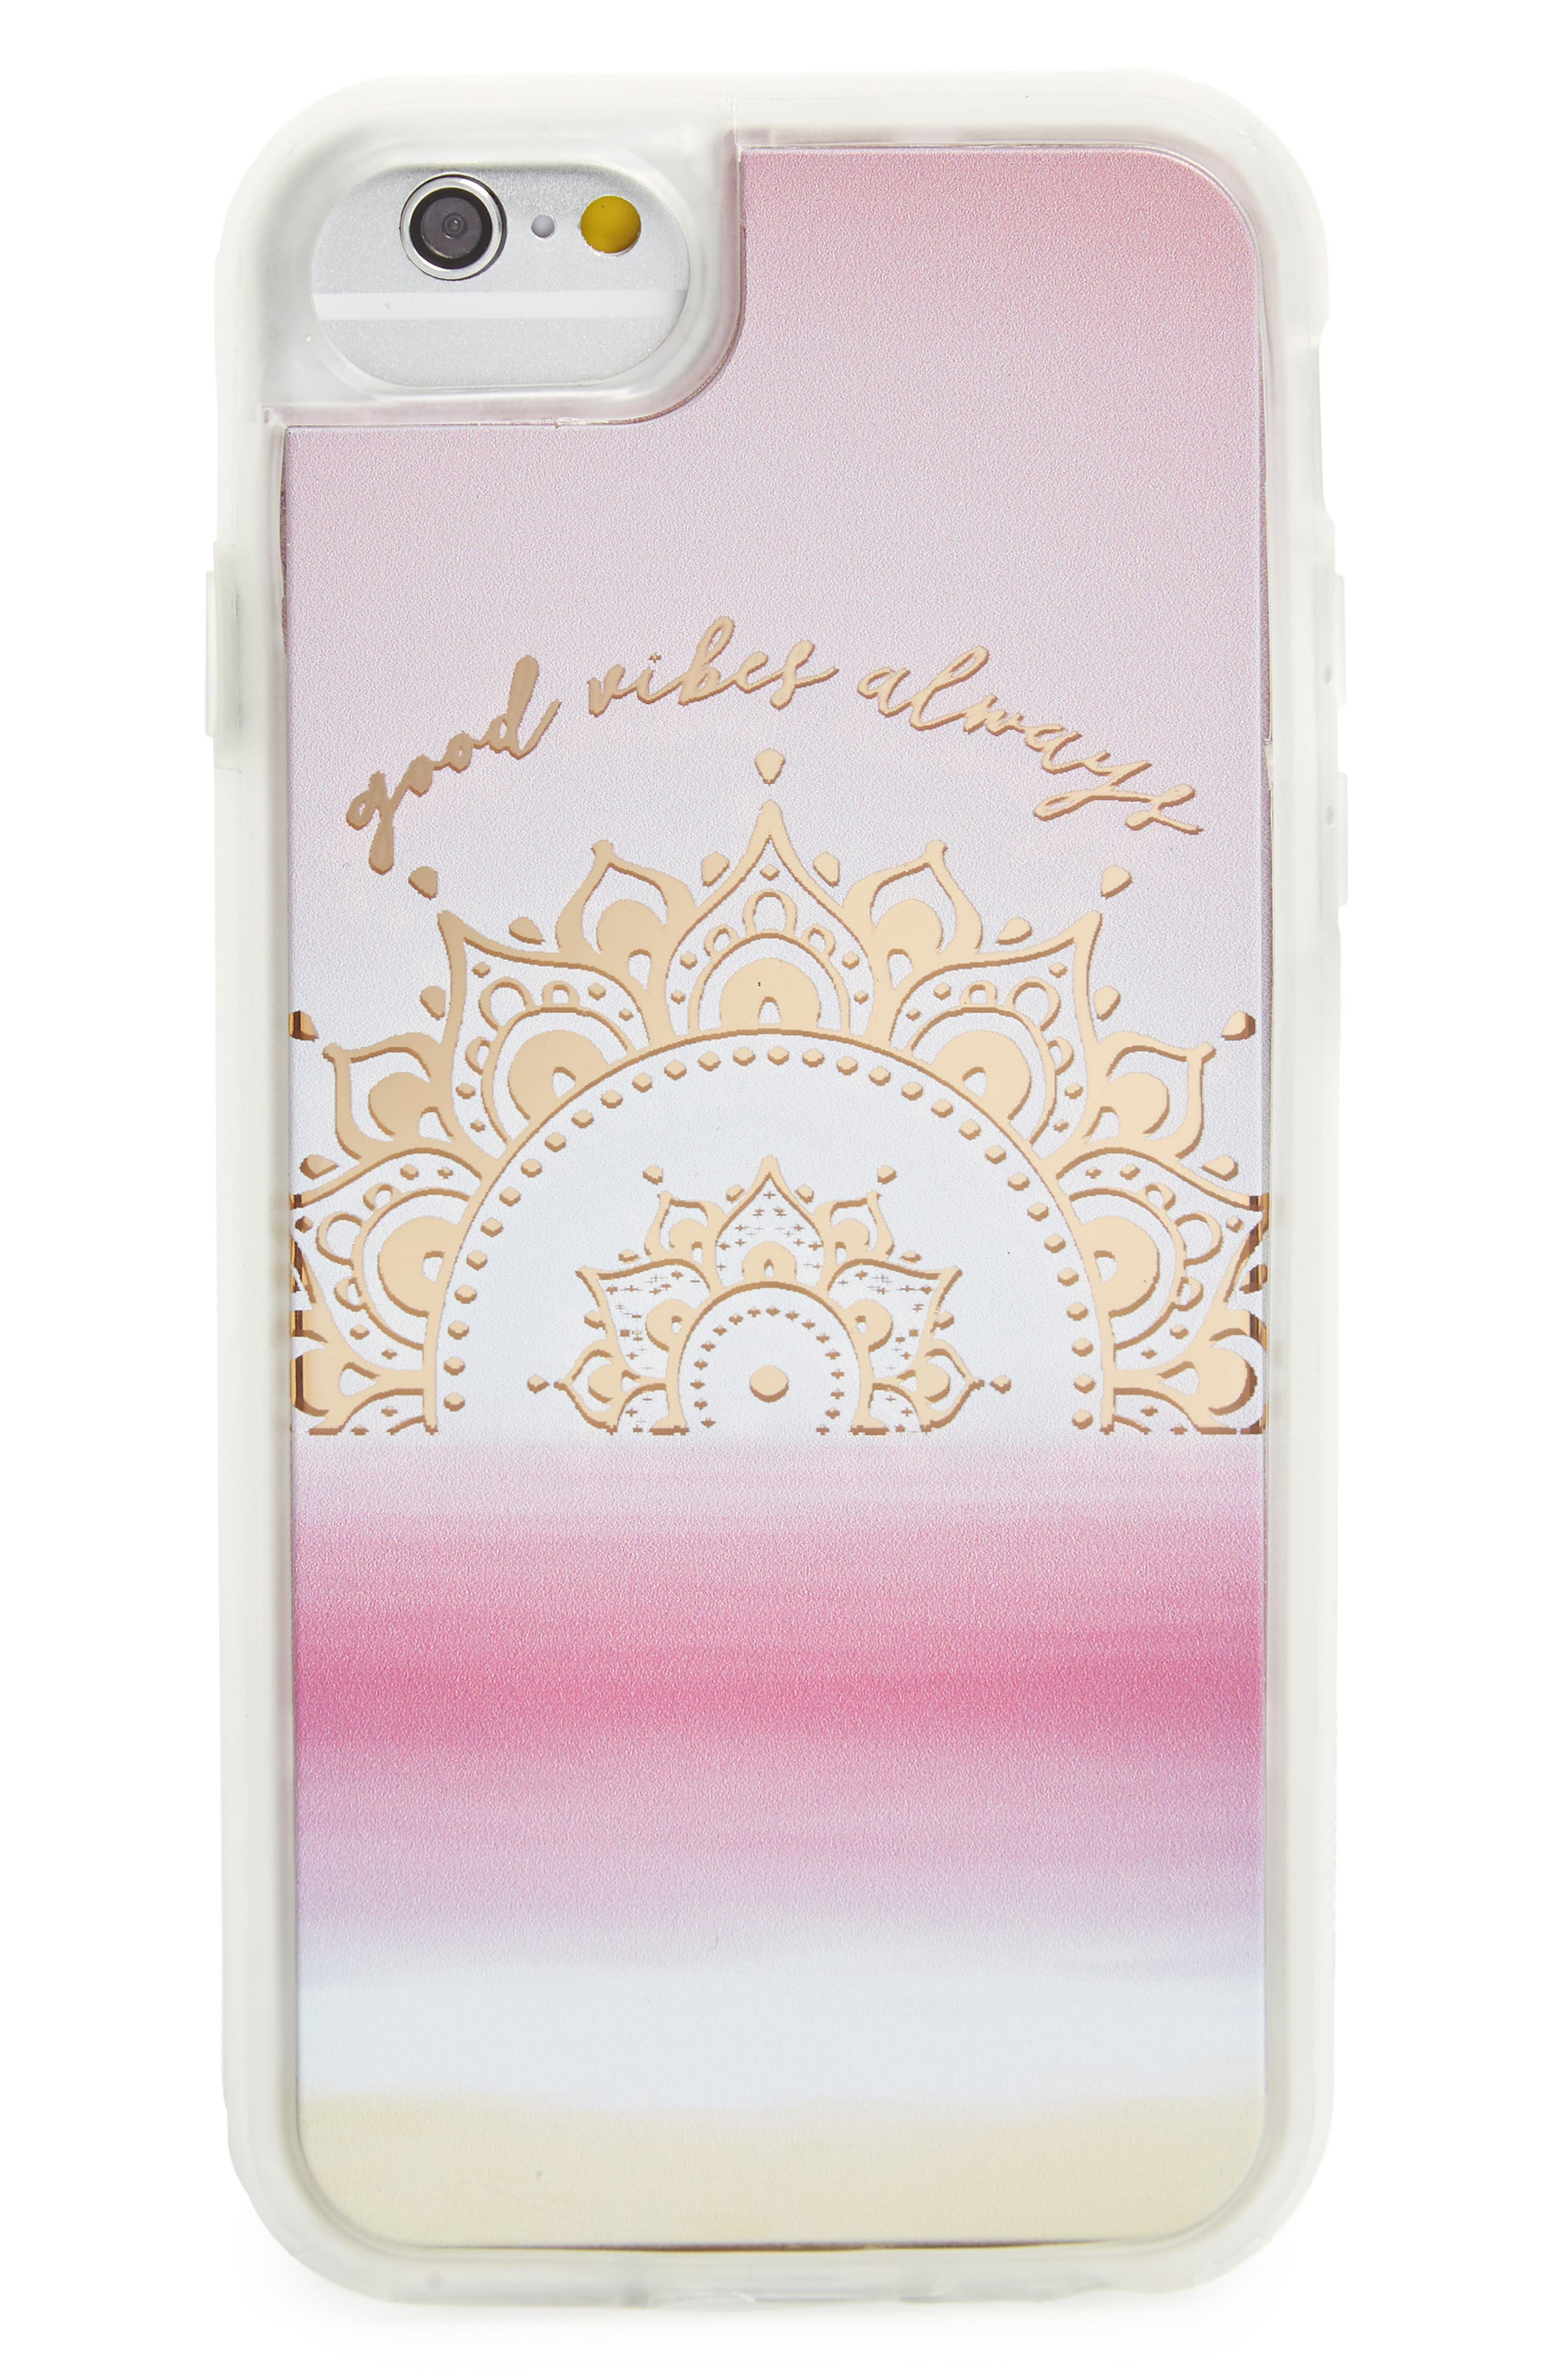 Main Image - MILKYWAY Good Vibes Only iPhone 6/6s/7 Case